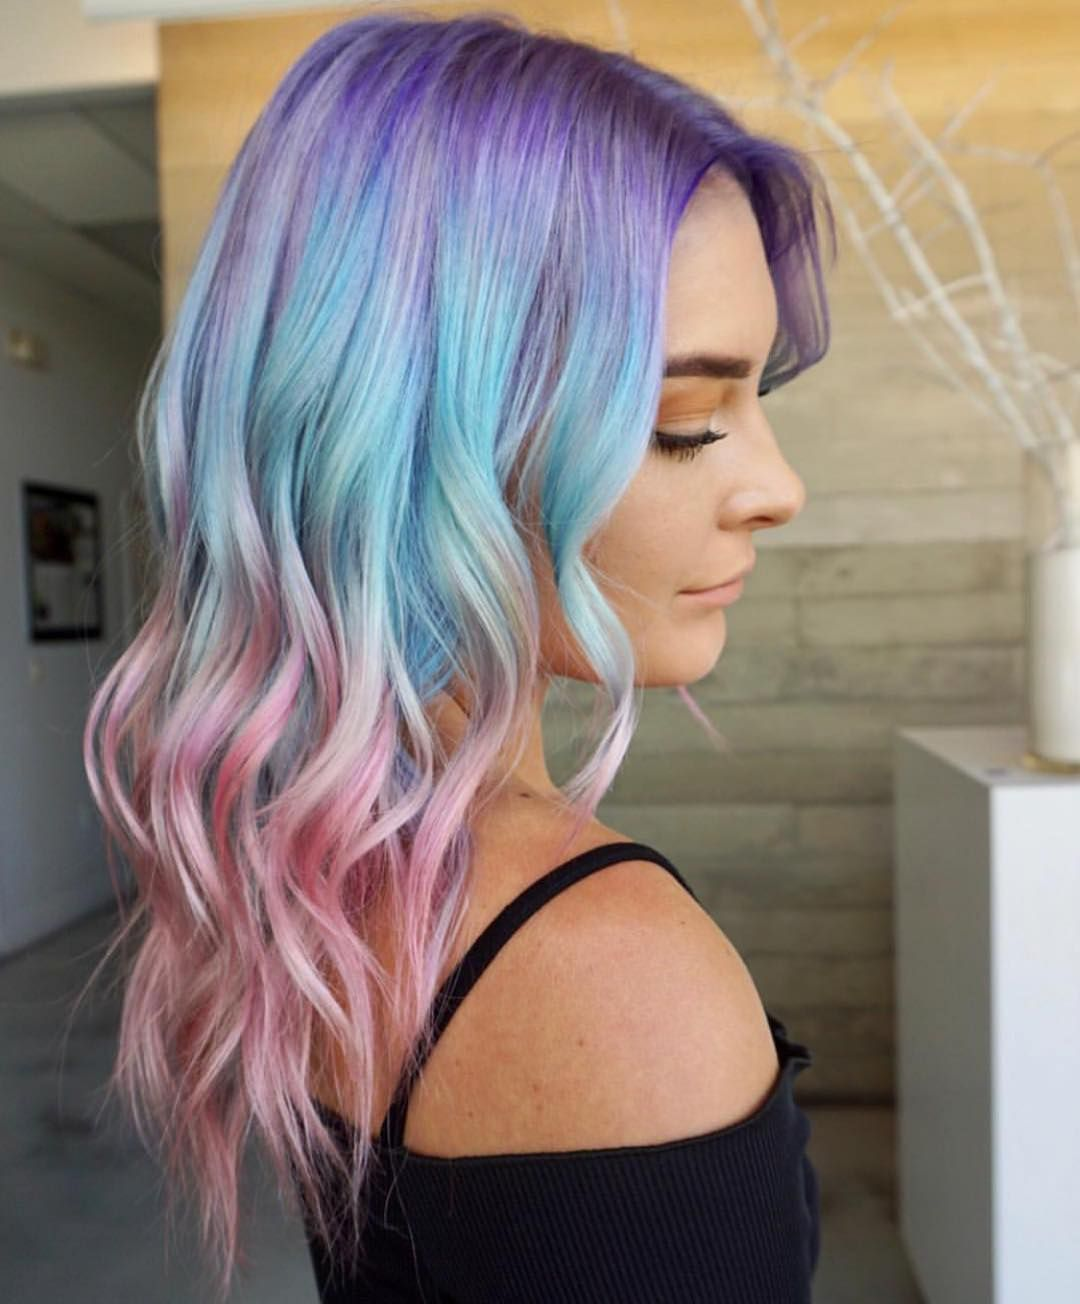 Pin On Colorful Hair To Dye For